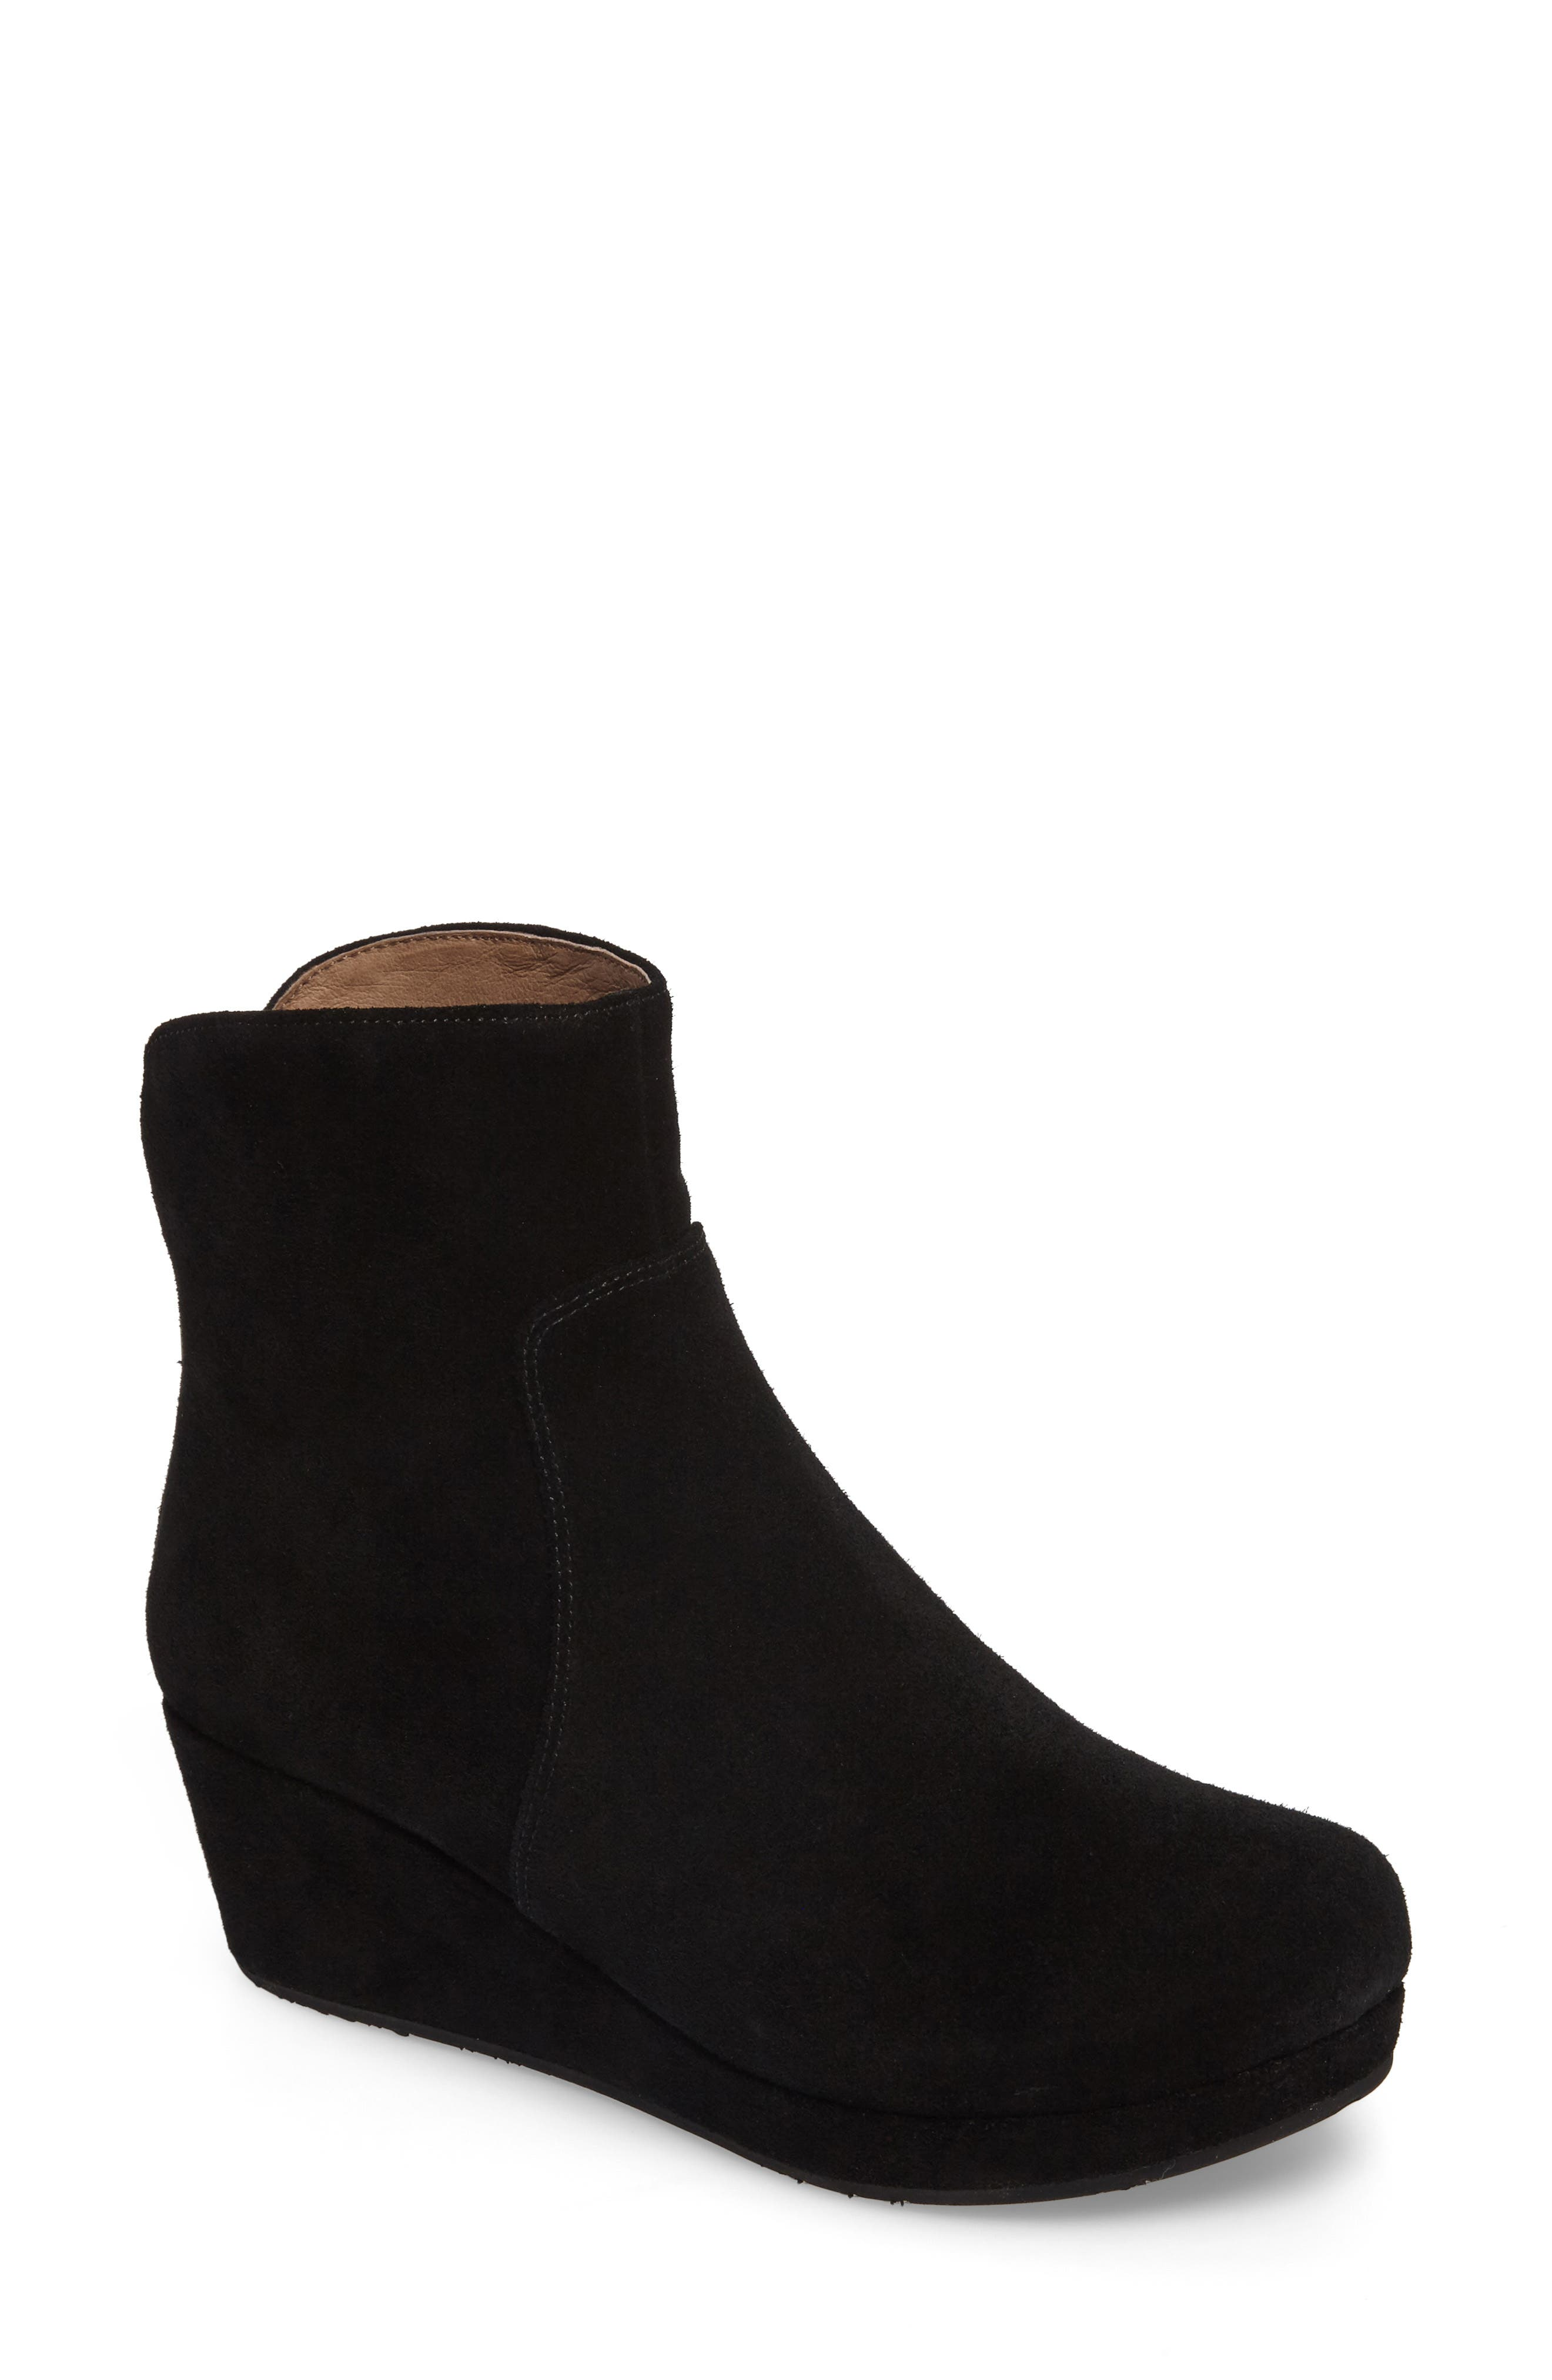 Yarden Wedge Bootie,                             Main thumbnail 1, color,                             Black Suede